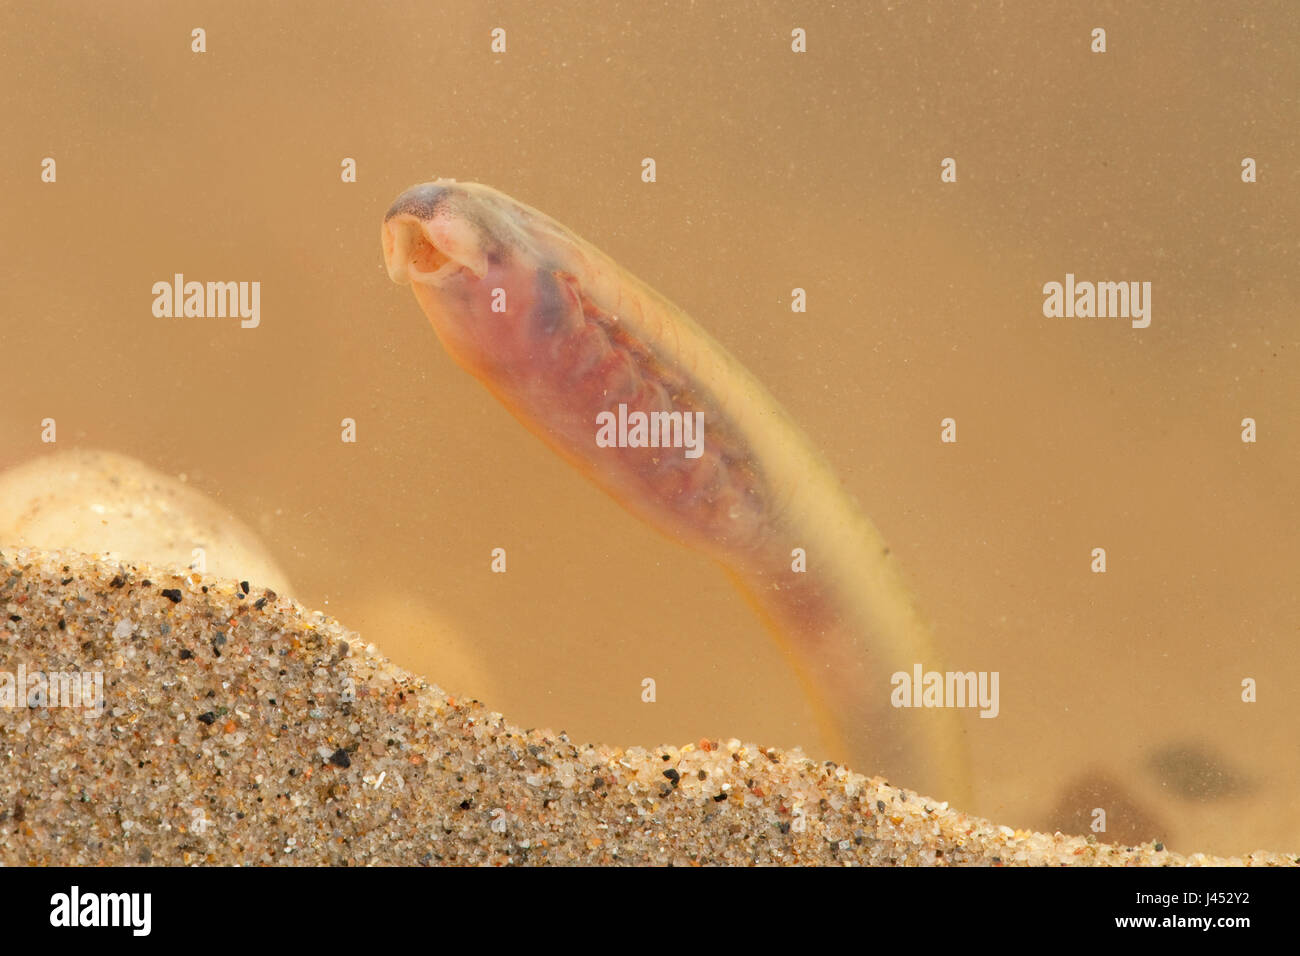 Photo of a River Lamprey or Brook Lamprey larvae, these species are so closely related that it is not possible to - Stock Image